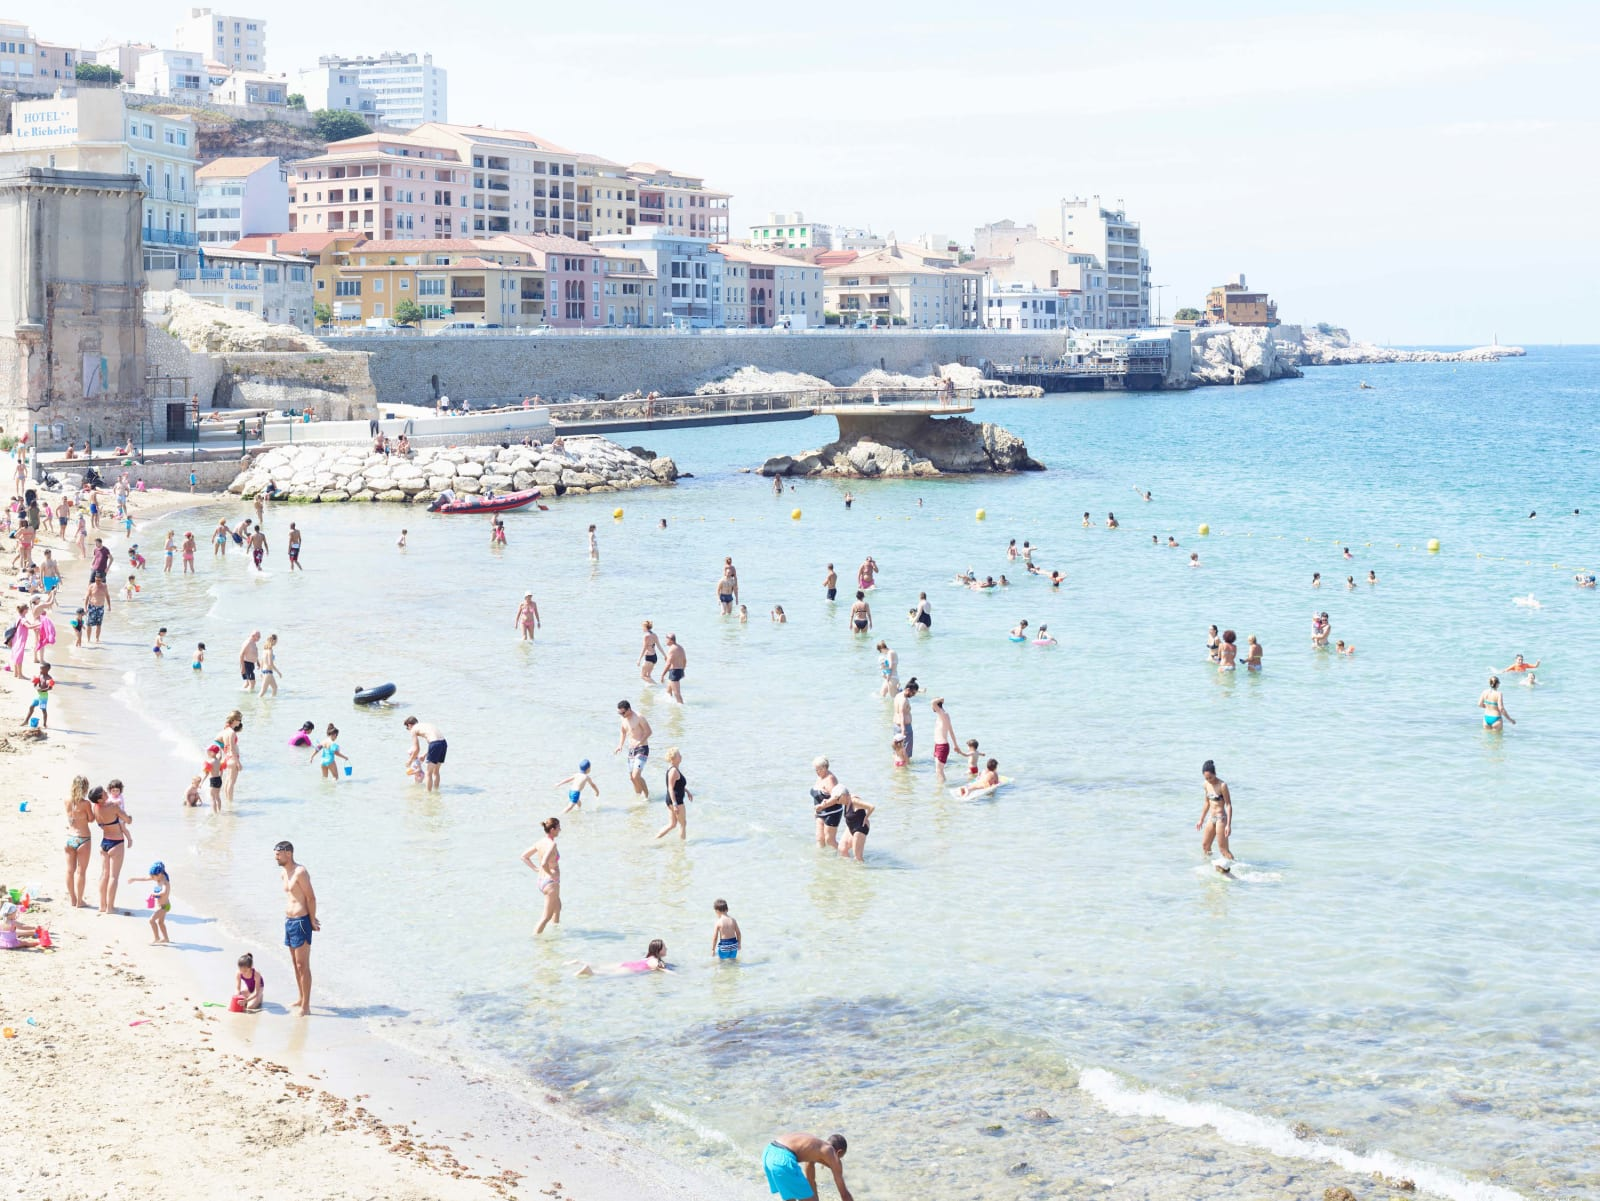 Swimmers at Plage des Catalans, Marseille, France by Massimo Vitali